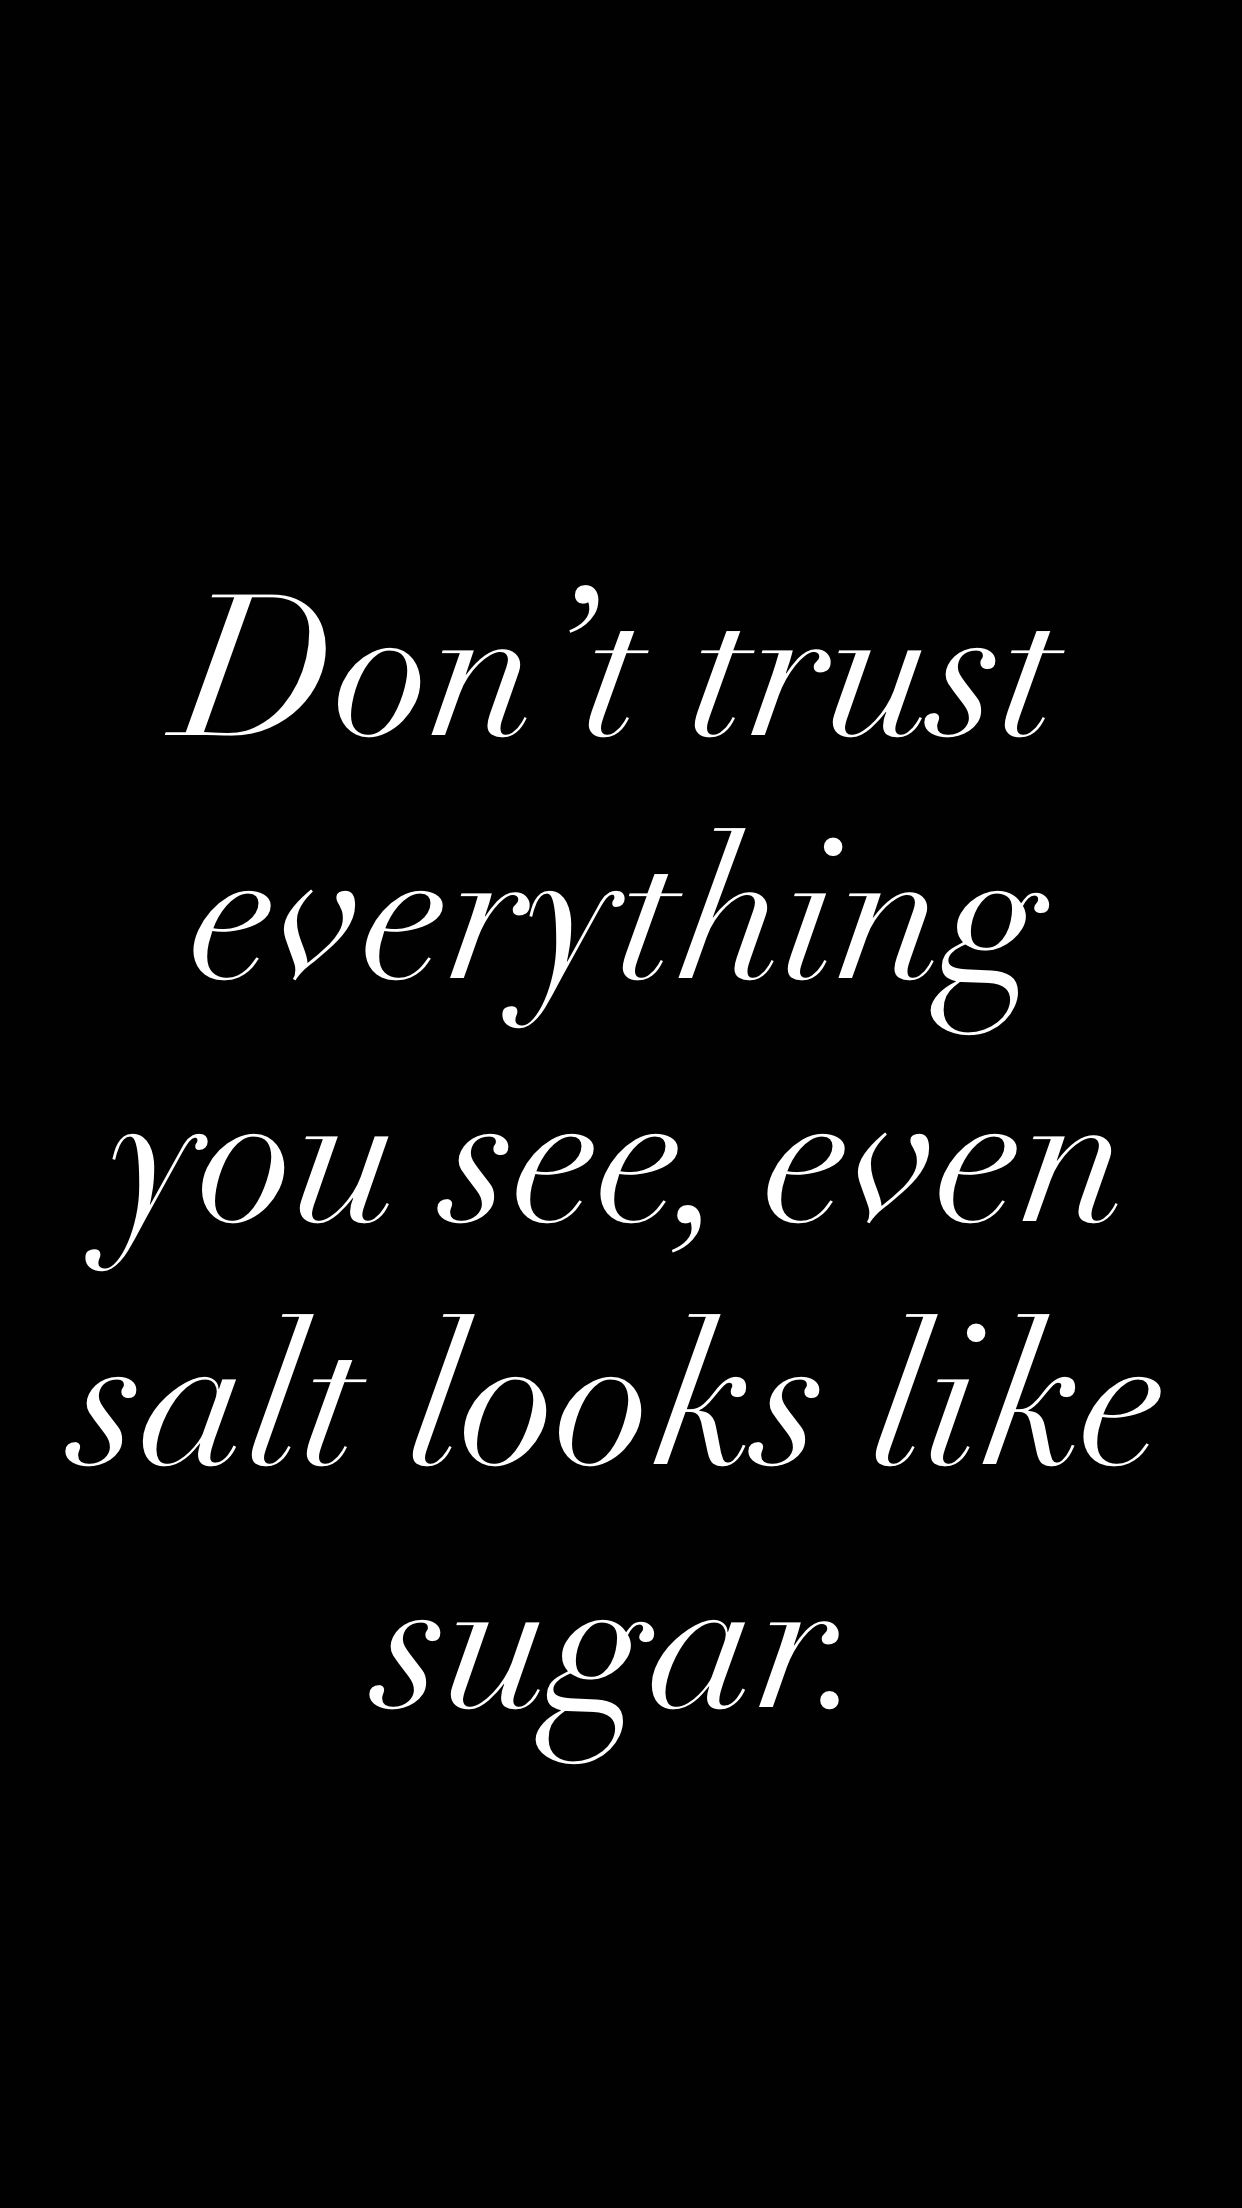 Pin by Jaclyn Gyger on Wise words (With images) | Me ...